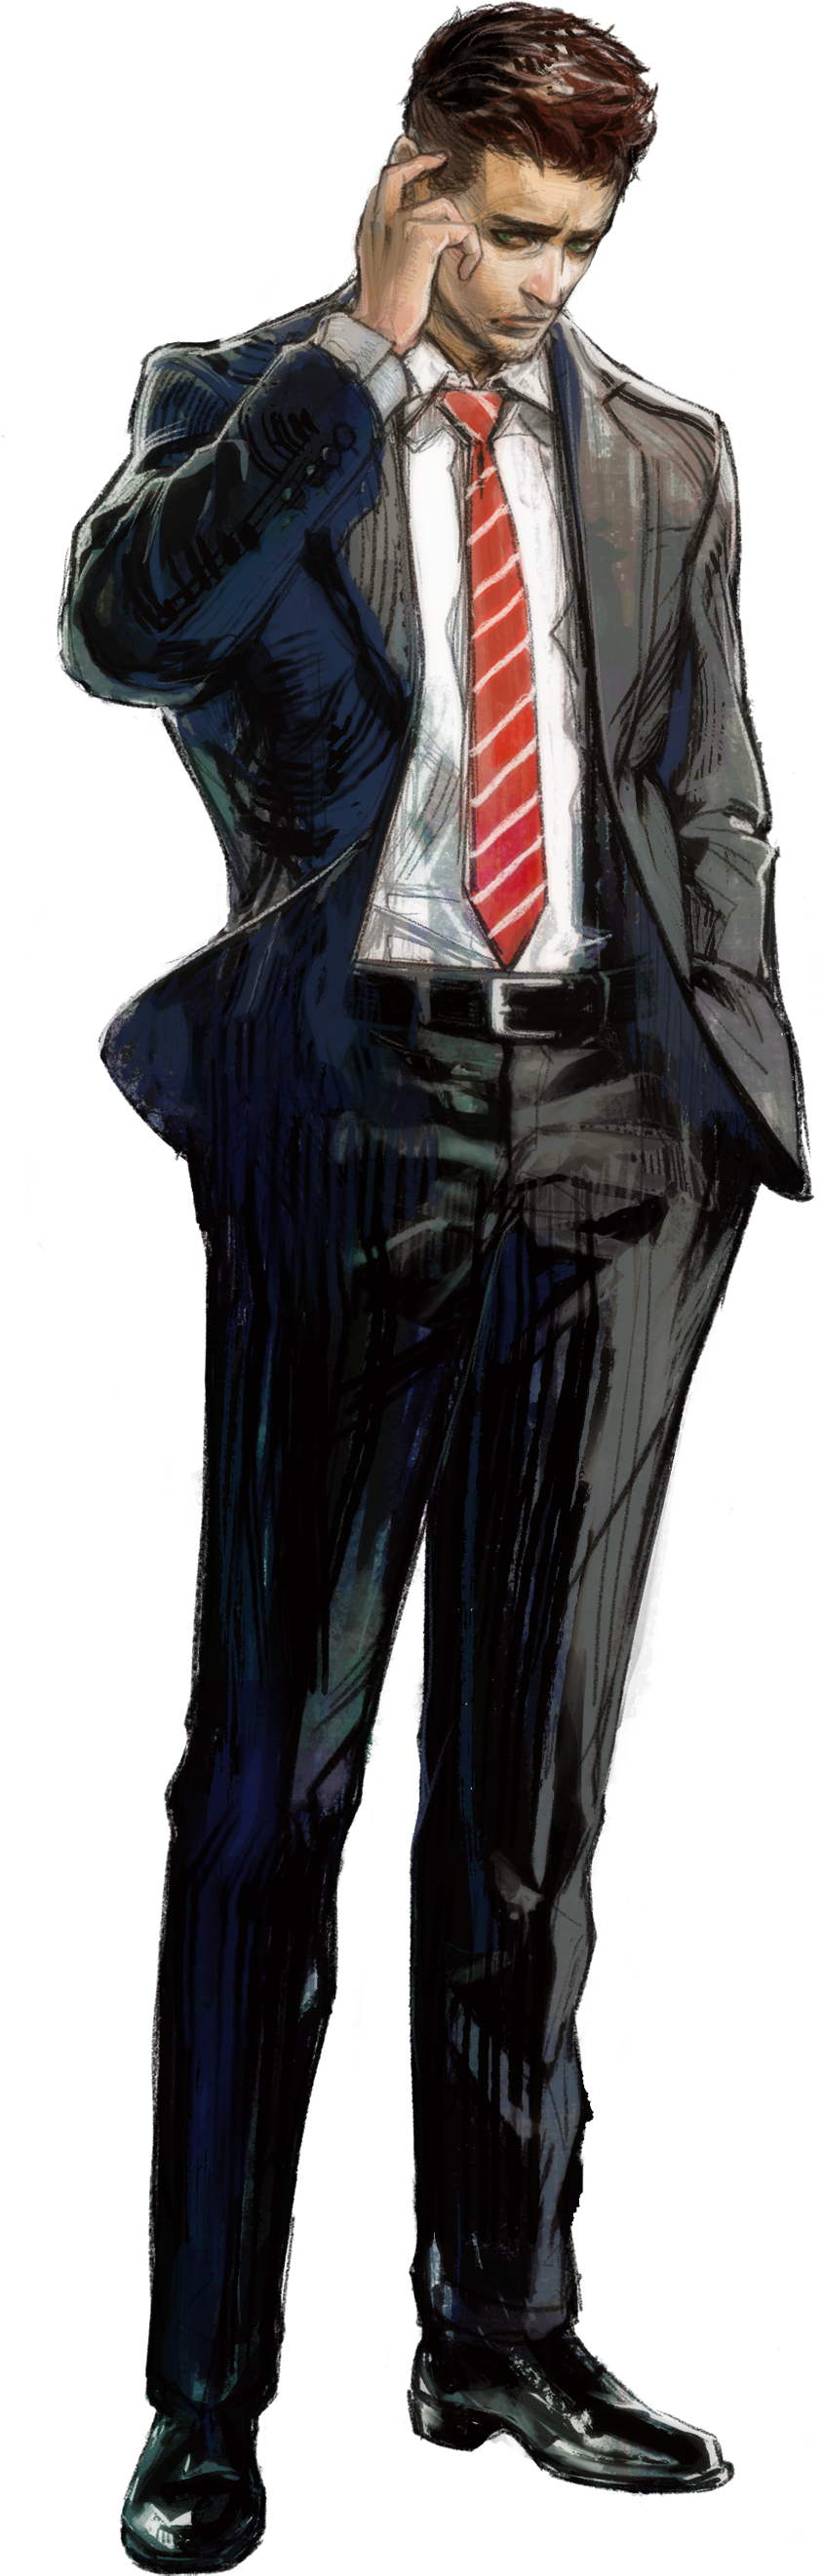 A drawing of Agent York in Deadly Premonition 2